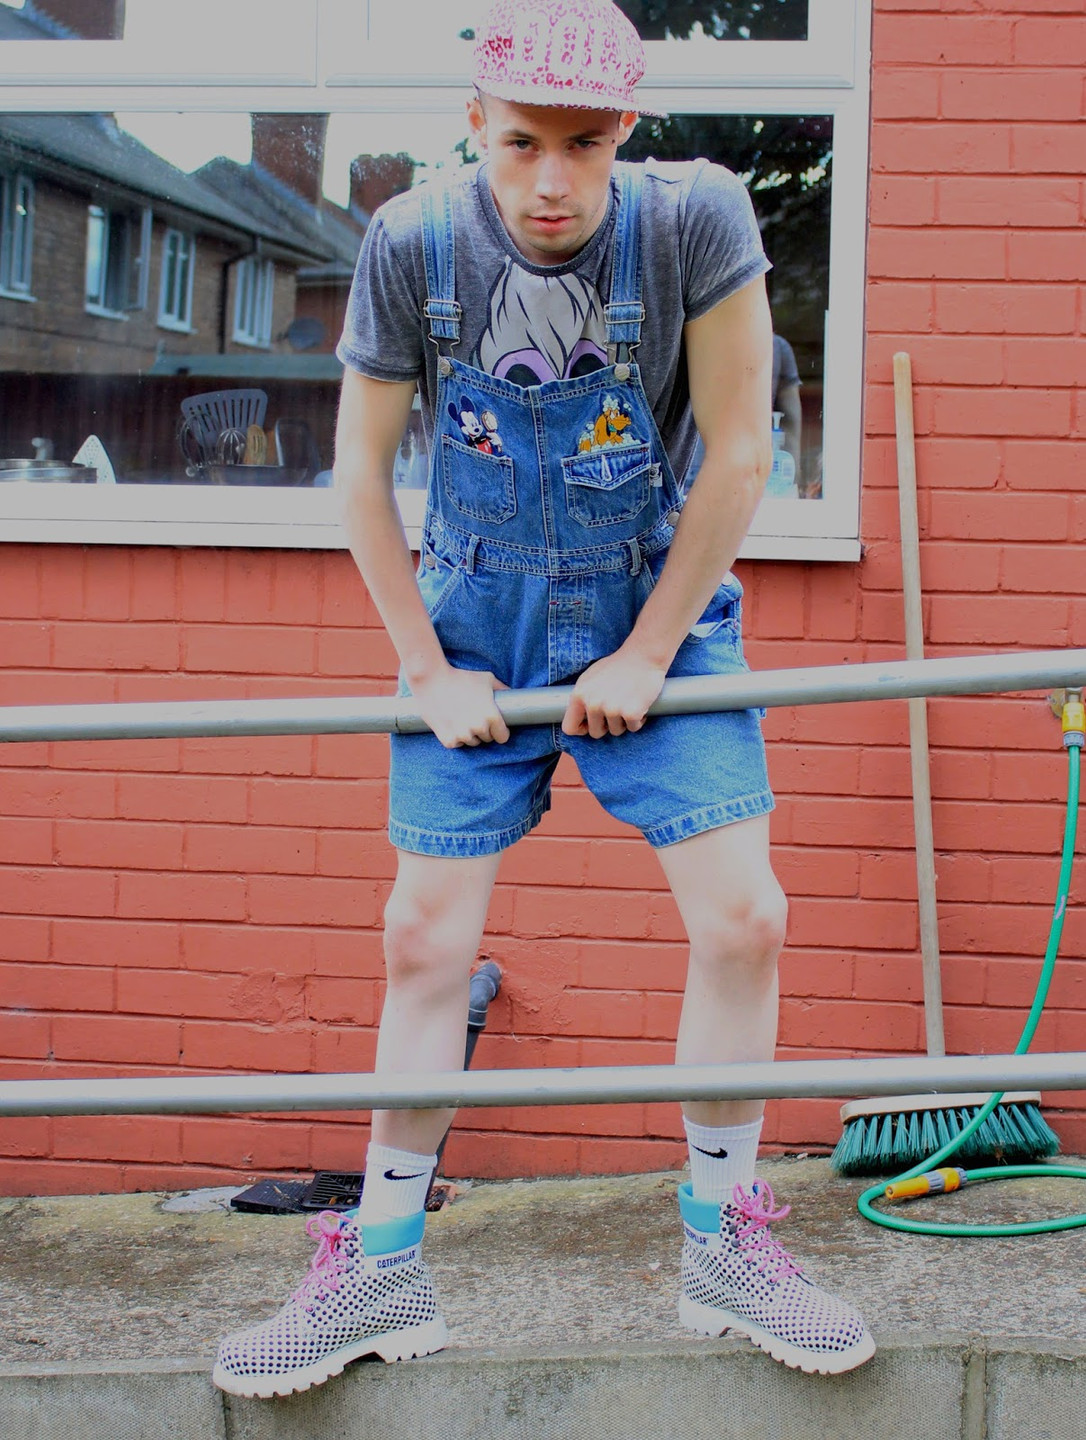 Photographed by Natalie Marsh. Edited and styled by Peter Marsh.  Hat- Nikki Lipstick, t-shirt- Primark,   dungarees- vintage Disney,  socks- Nike, boots- Caterpillar.